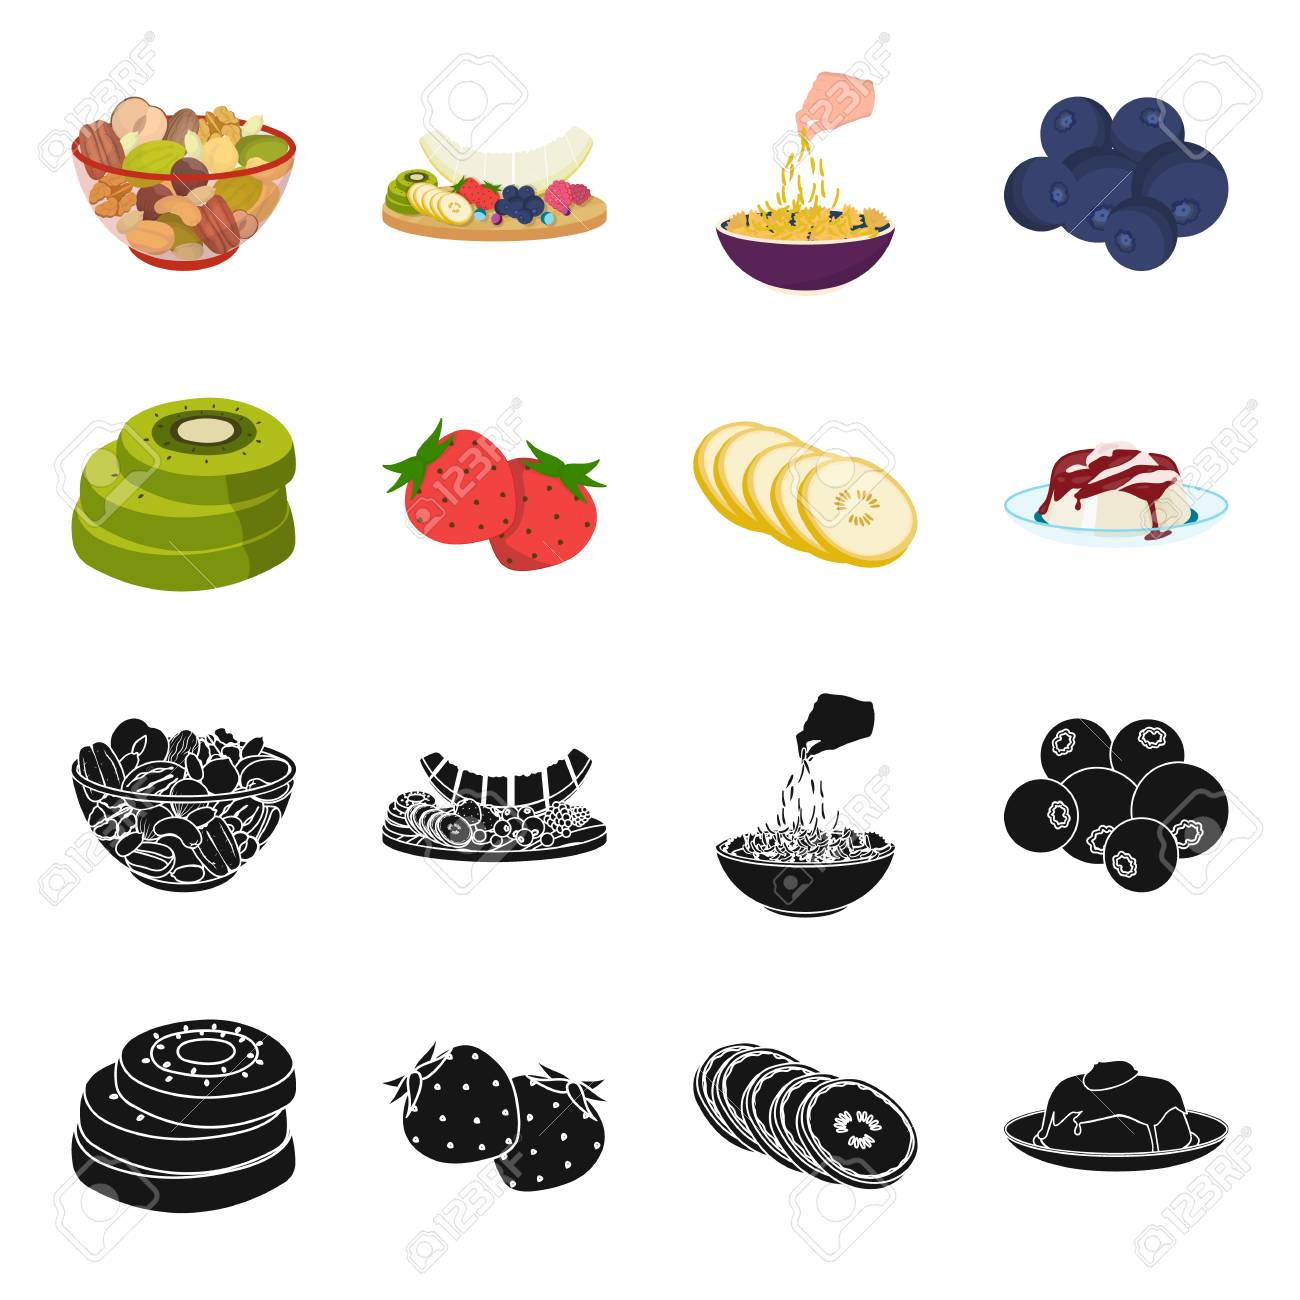 Fruits And Other Food Food Set Collection Icons In Black Cartoon